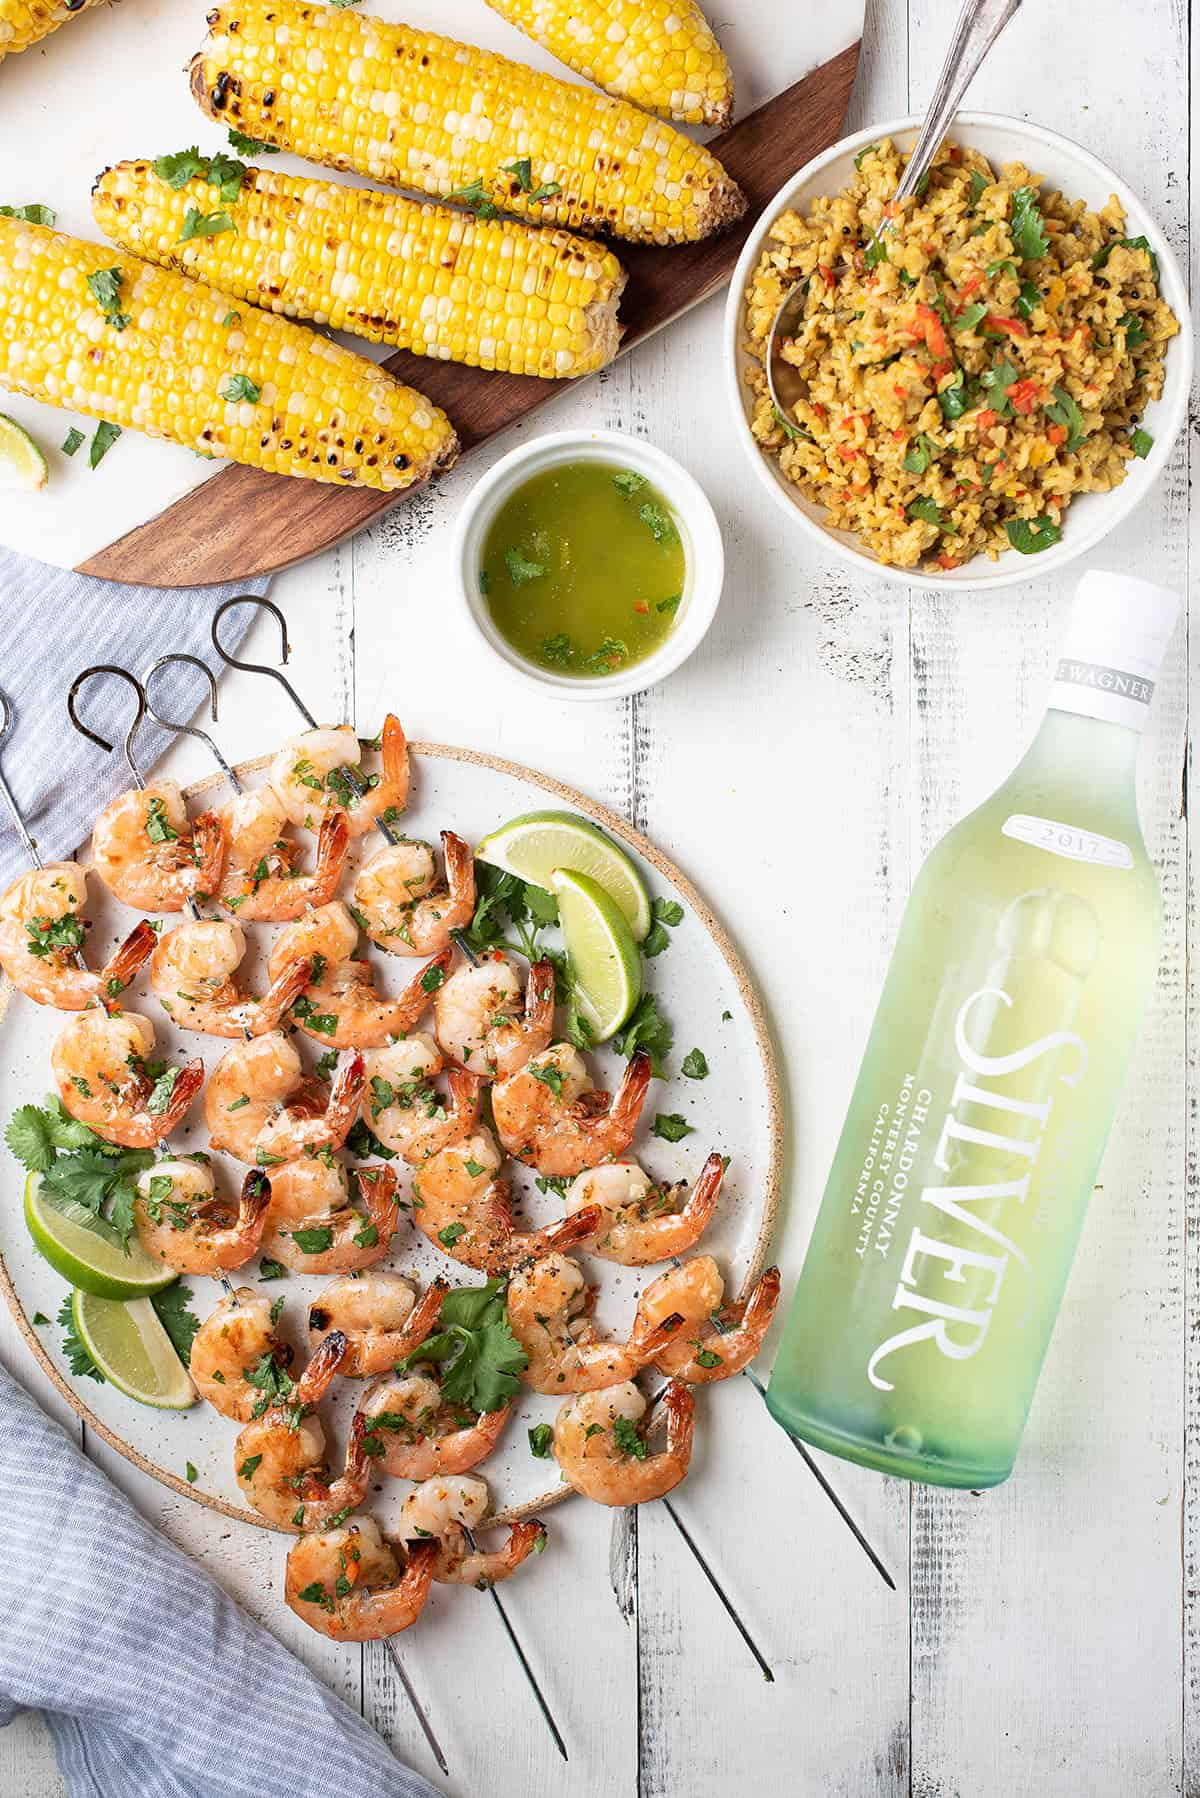 shrimp skewers on white plate with bottle of white wine, grilled corn, and rice